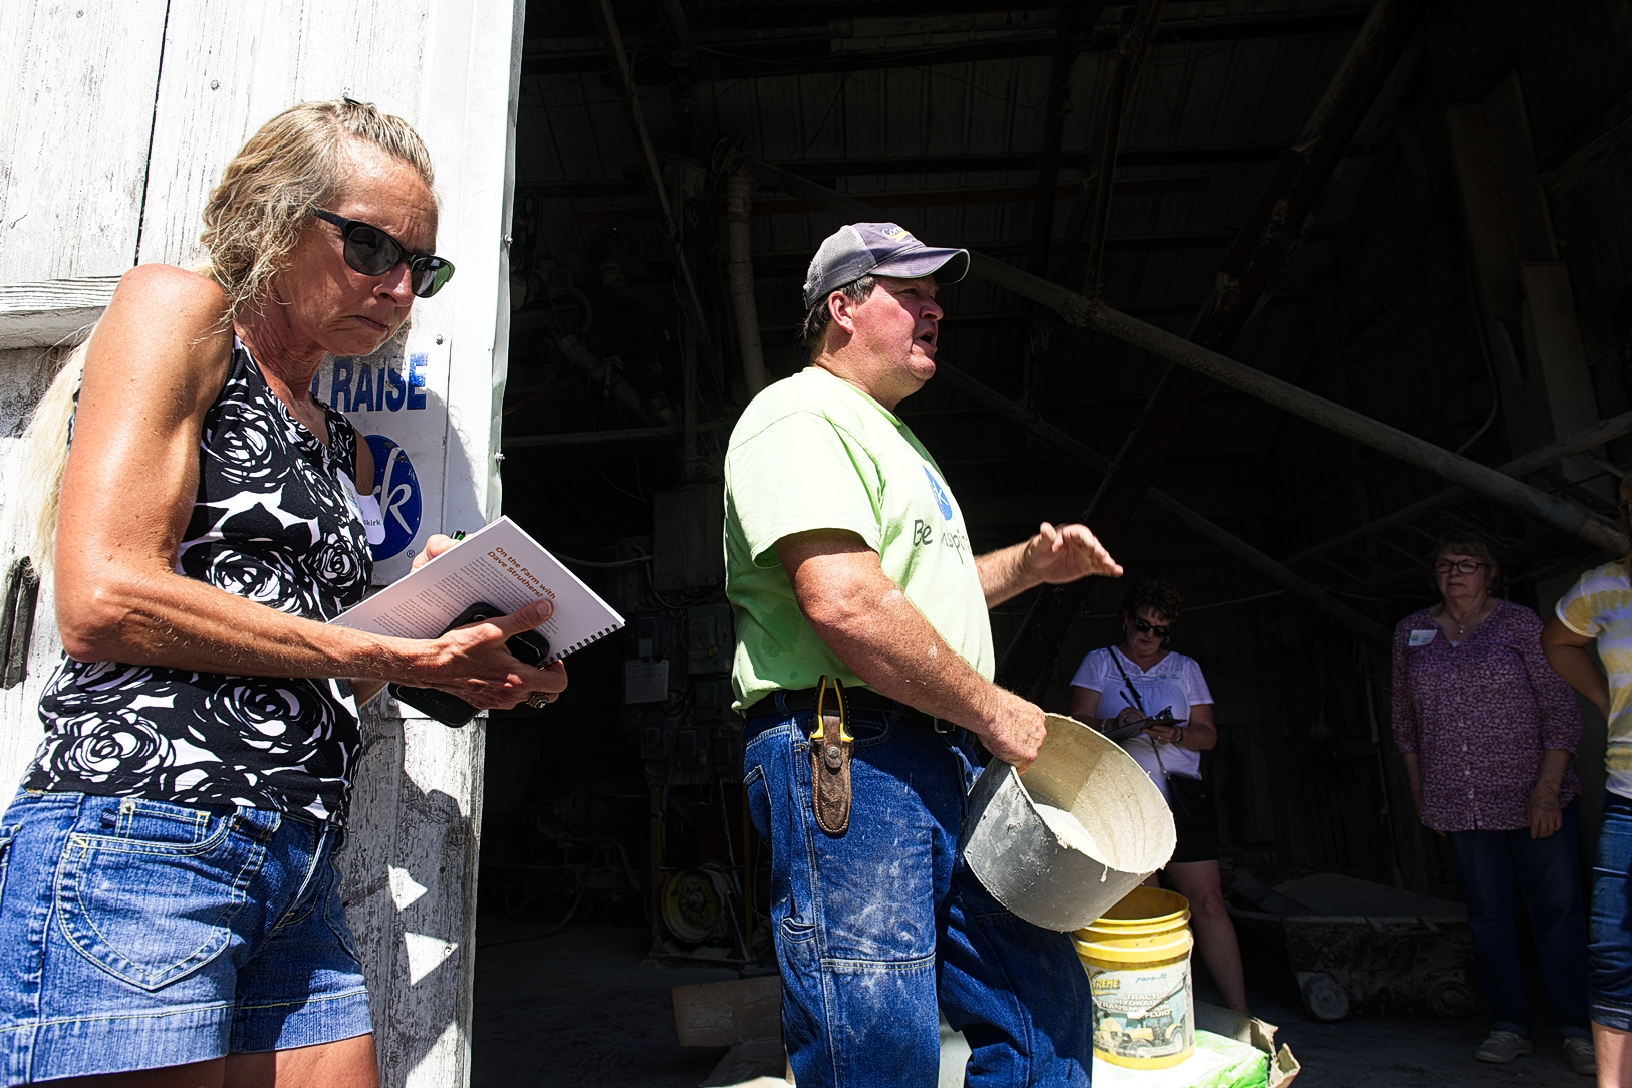 Dave Struthers shares how he got his start in farming with Food U participants. Photo credit: Joseph L. Murphy/Iowa Soybean Association